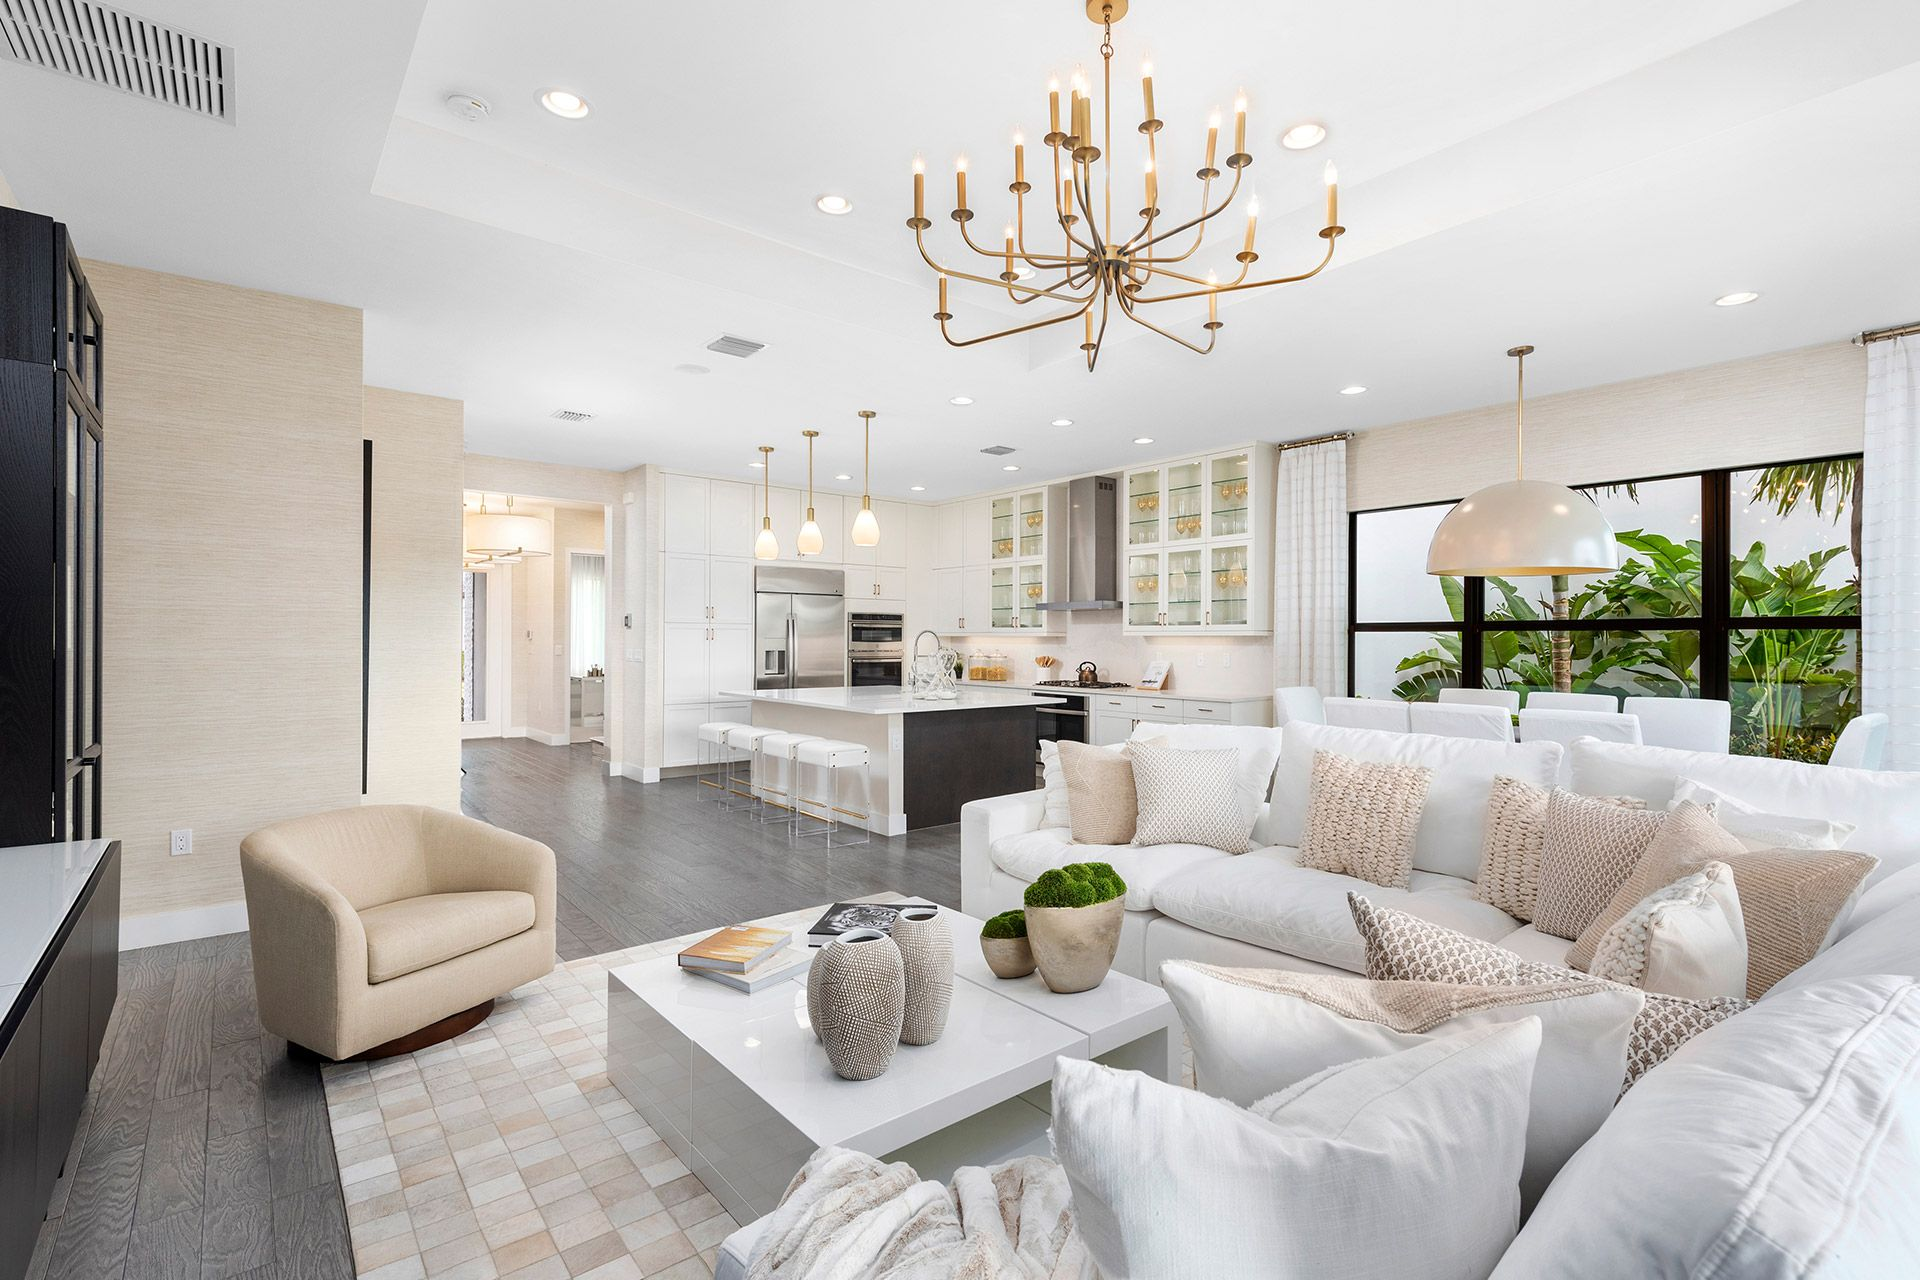 Living Area featured in the Samoa By GL Homes in Palm Beach County, FL